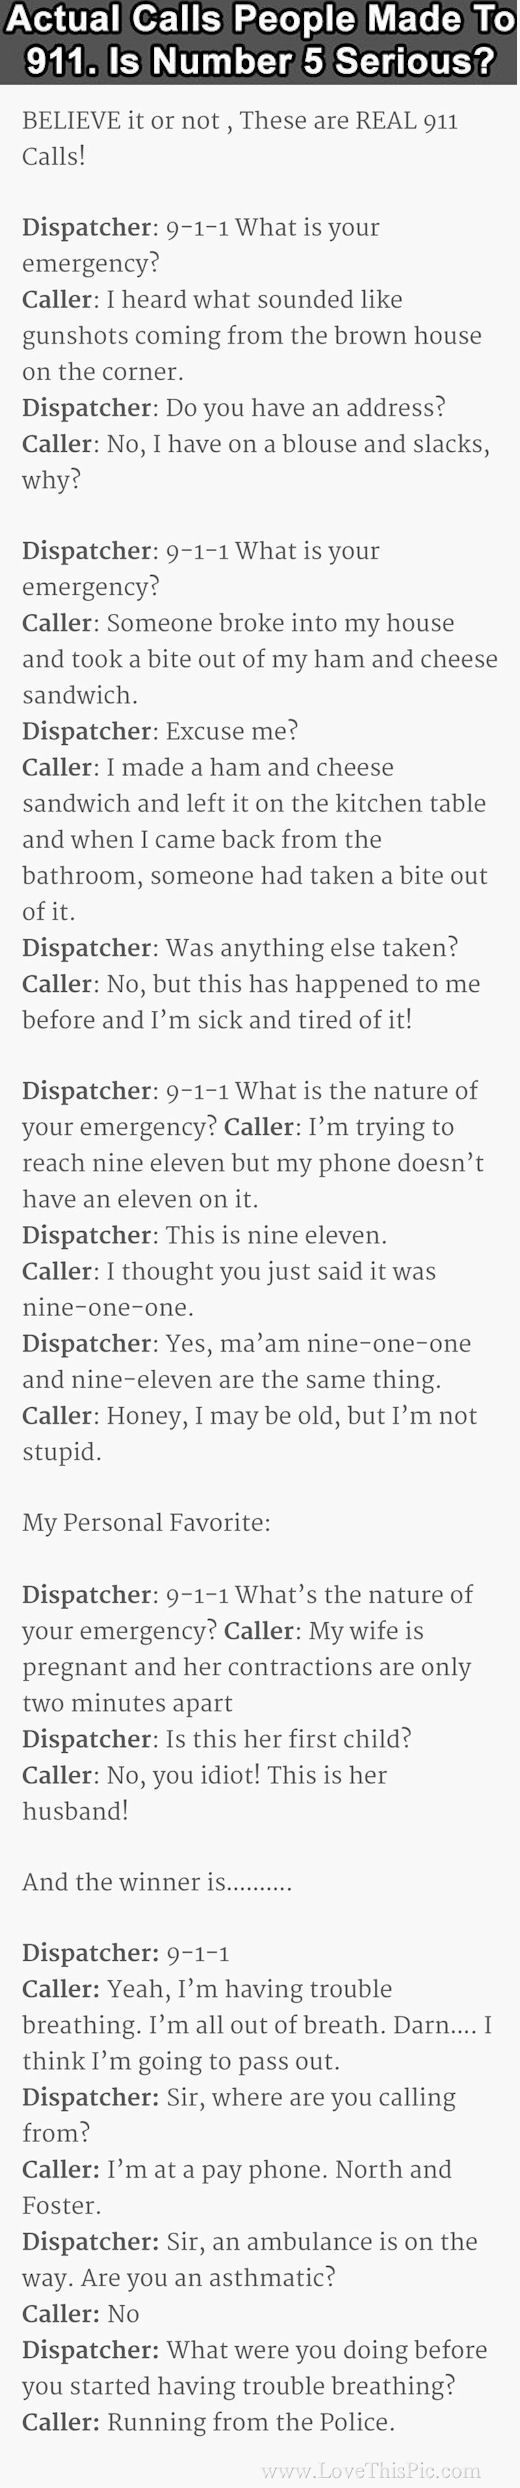 Believe It Or Not These Are Actual Calls People Made To 911 funny jokes story lol funny quote funny quotes funny sayings joke humor stories